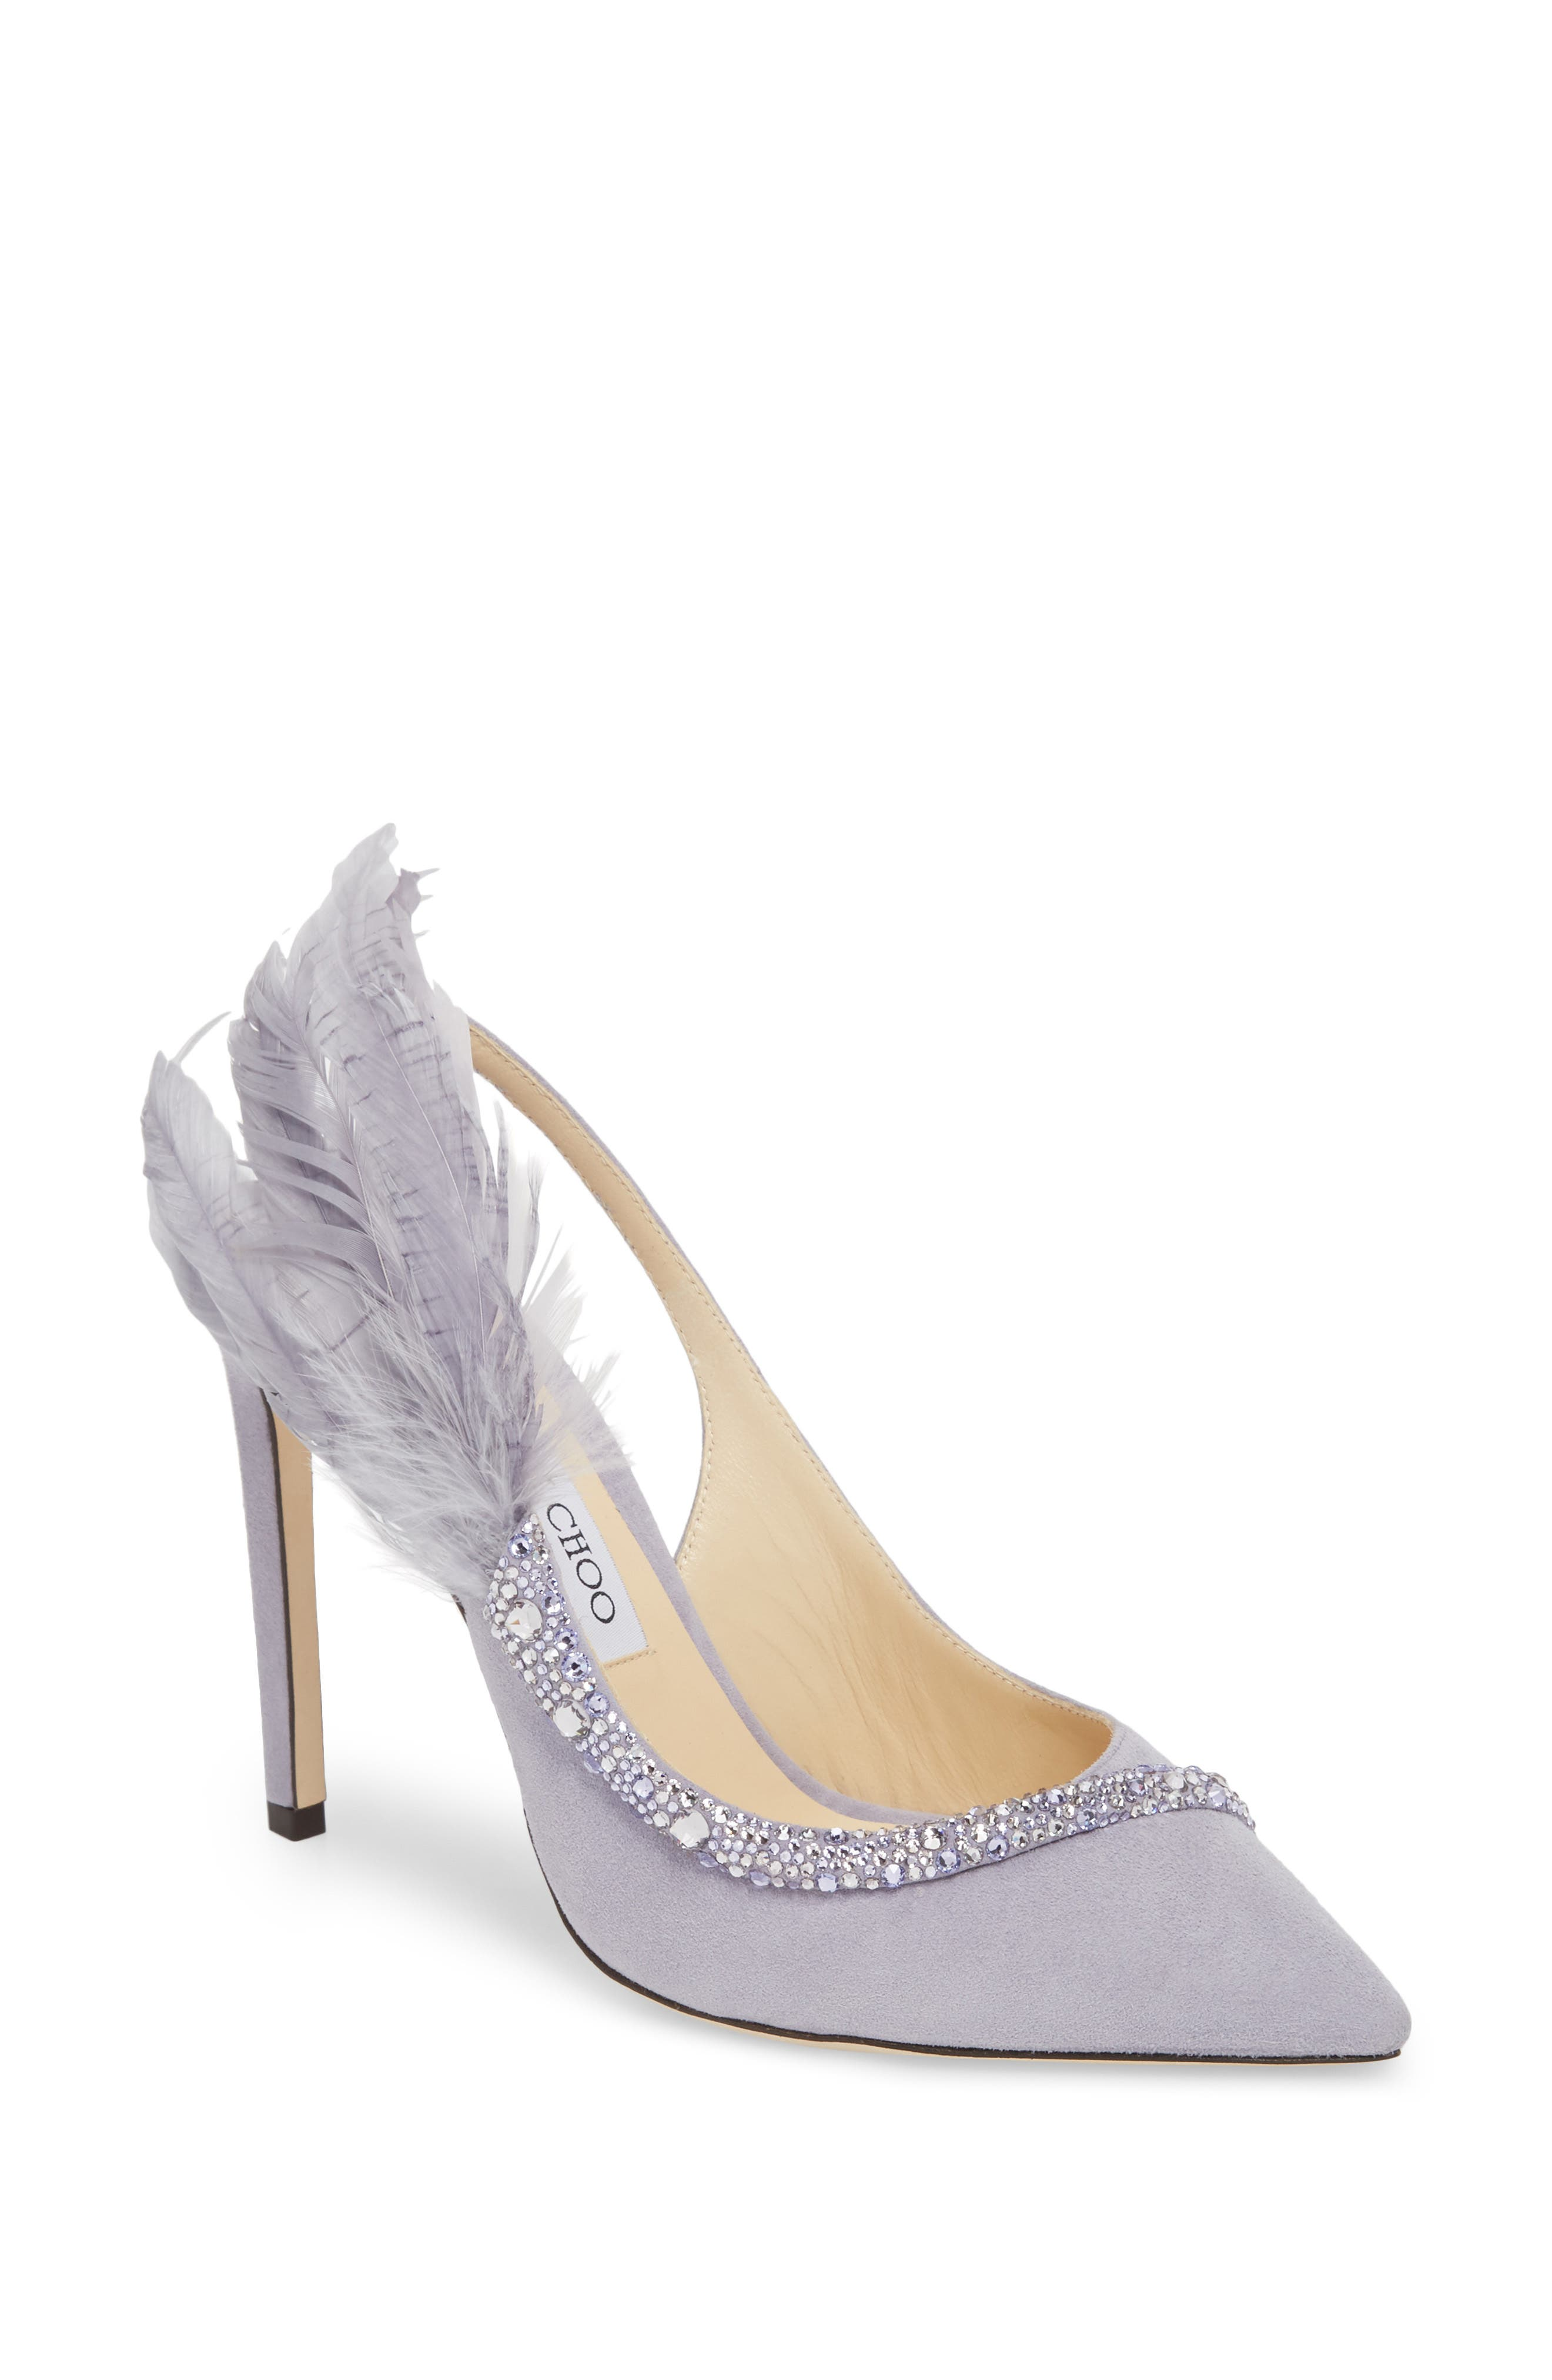 Tacey Crystal & Feather Embellished Slingback Sandal,                             Main thumbnail 1, color,                             530